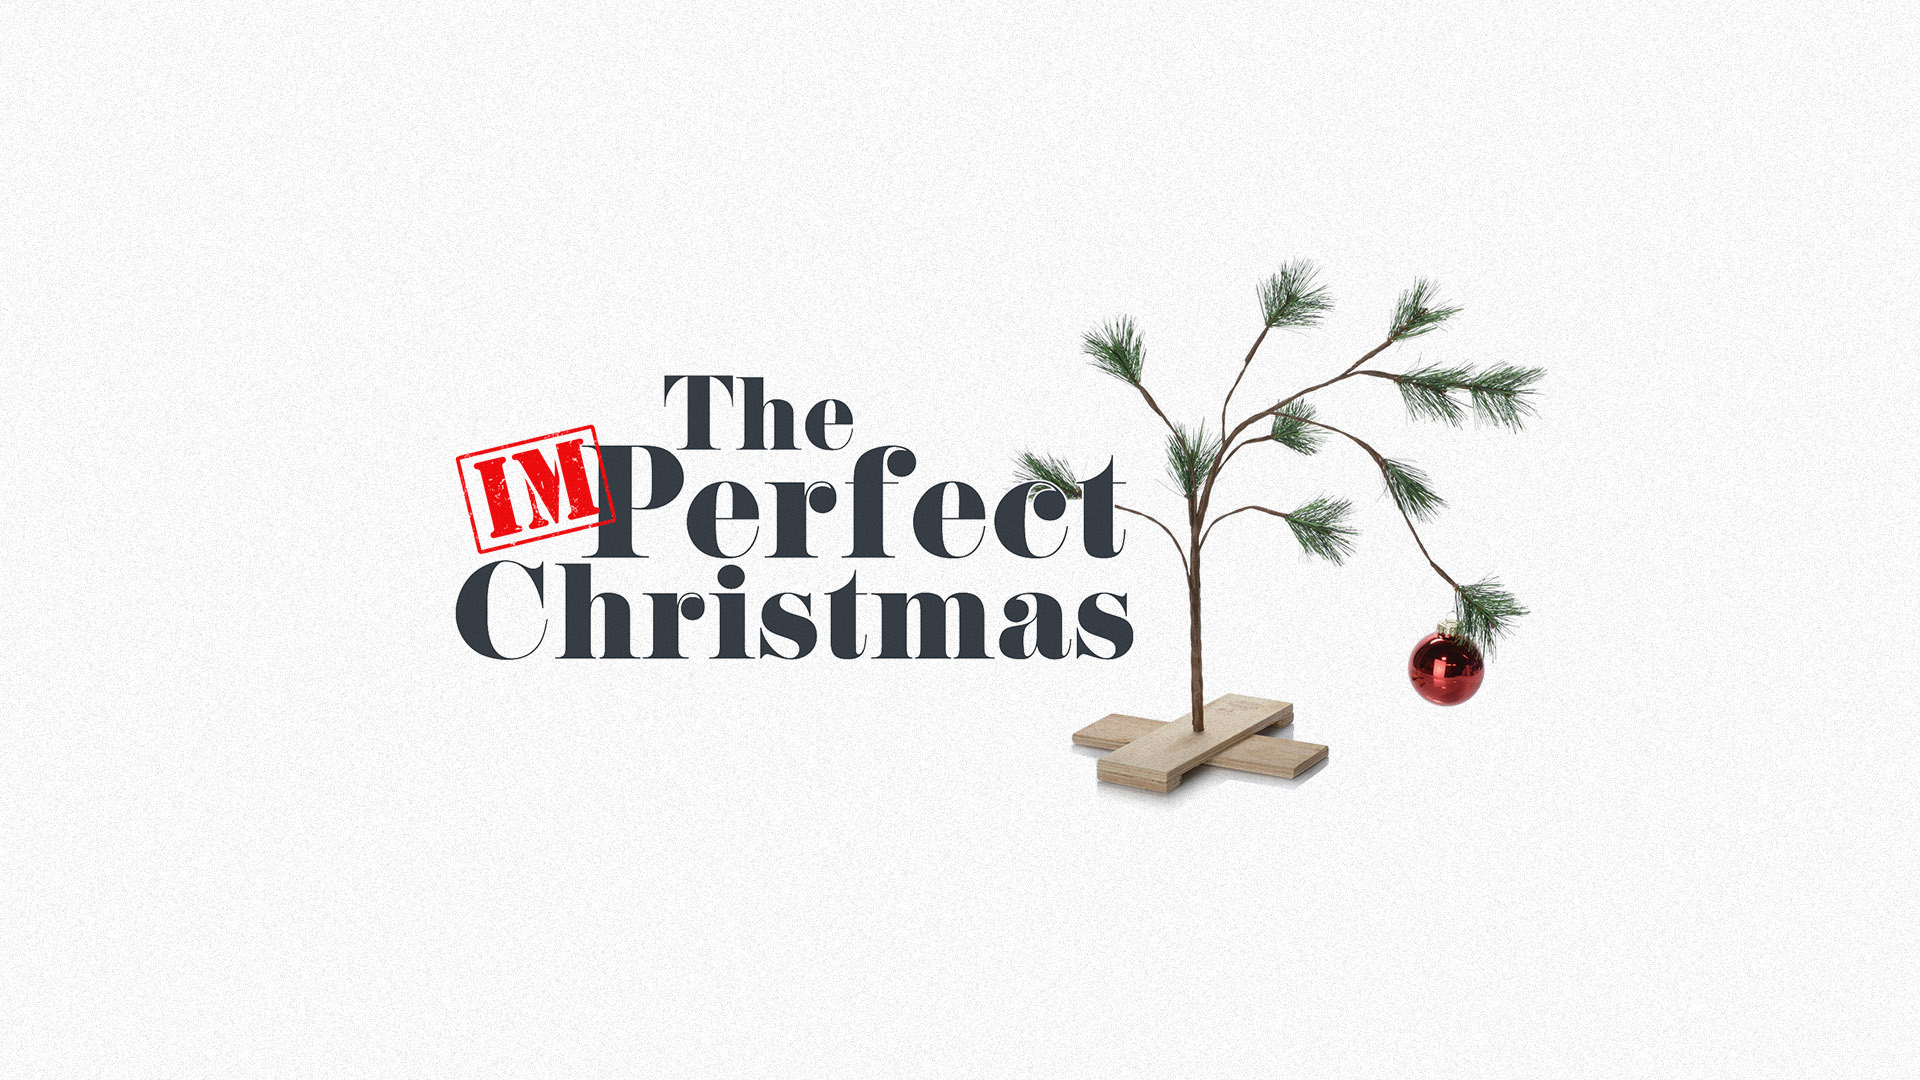 The Imperfect Christmas